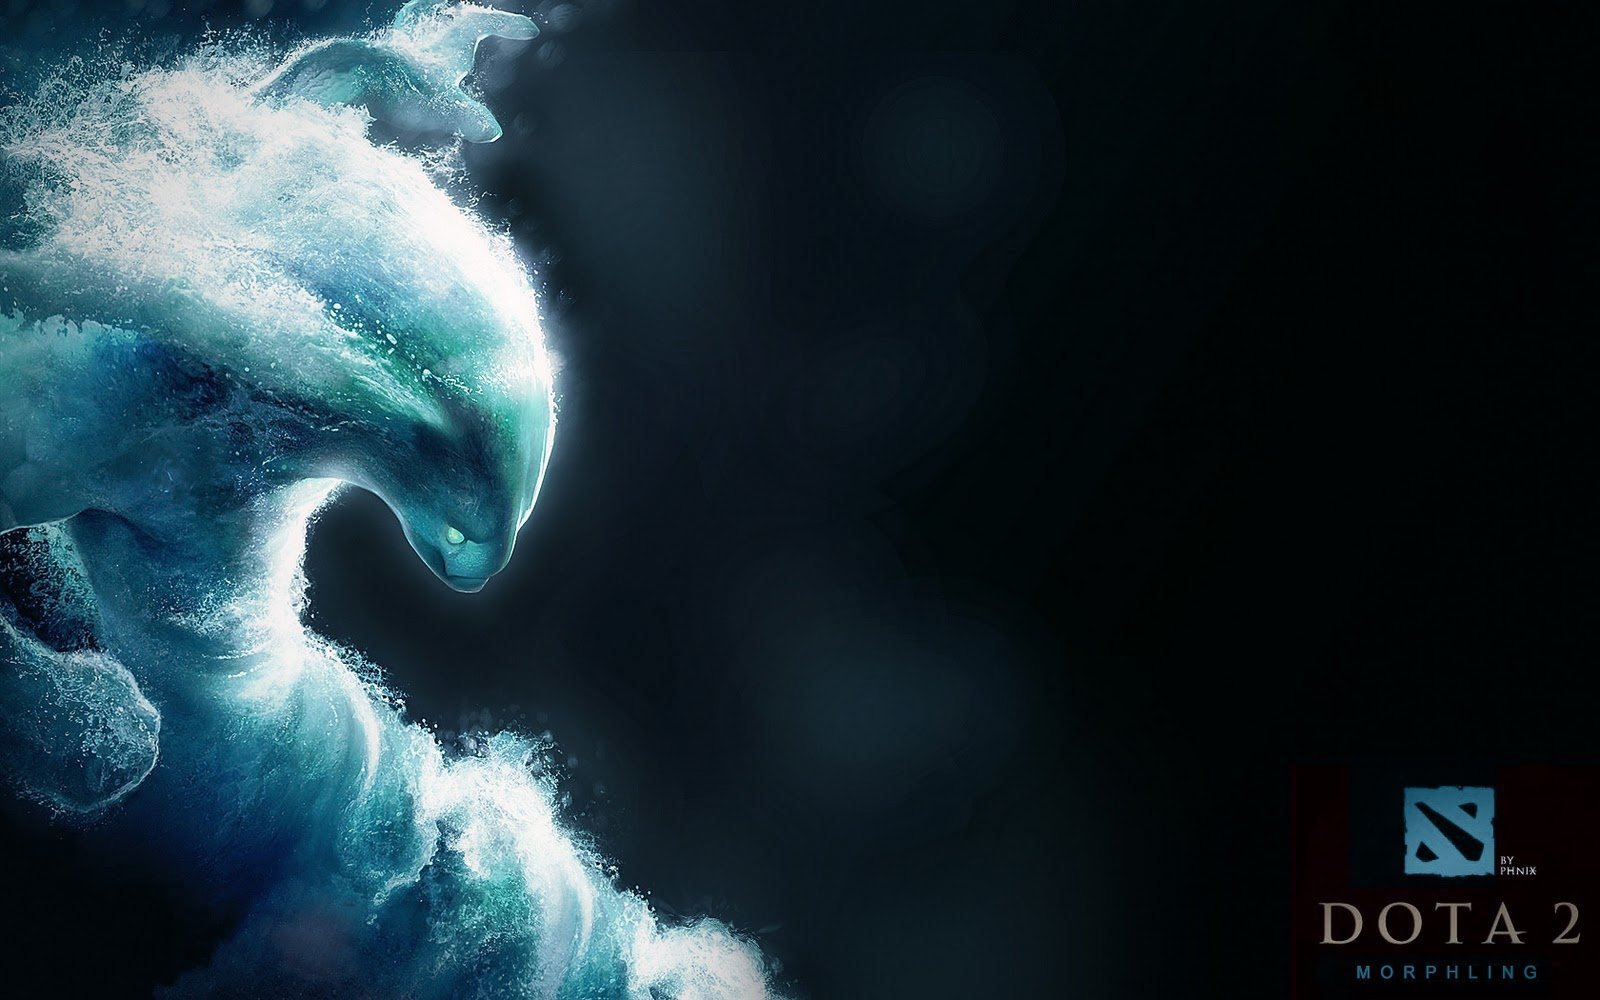 4 Morphling Dota 2 HD Wallpapers Background Images   Wallpaper 1600x1000